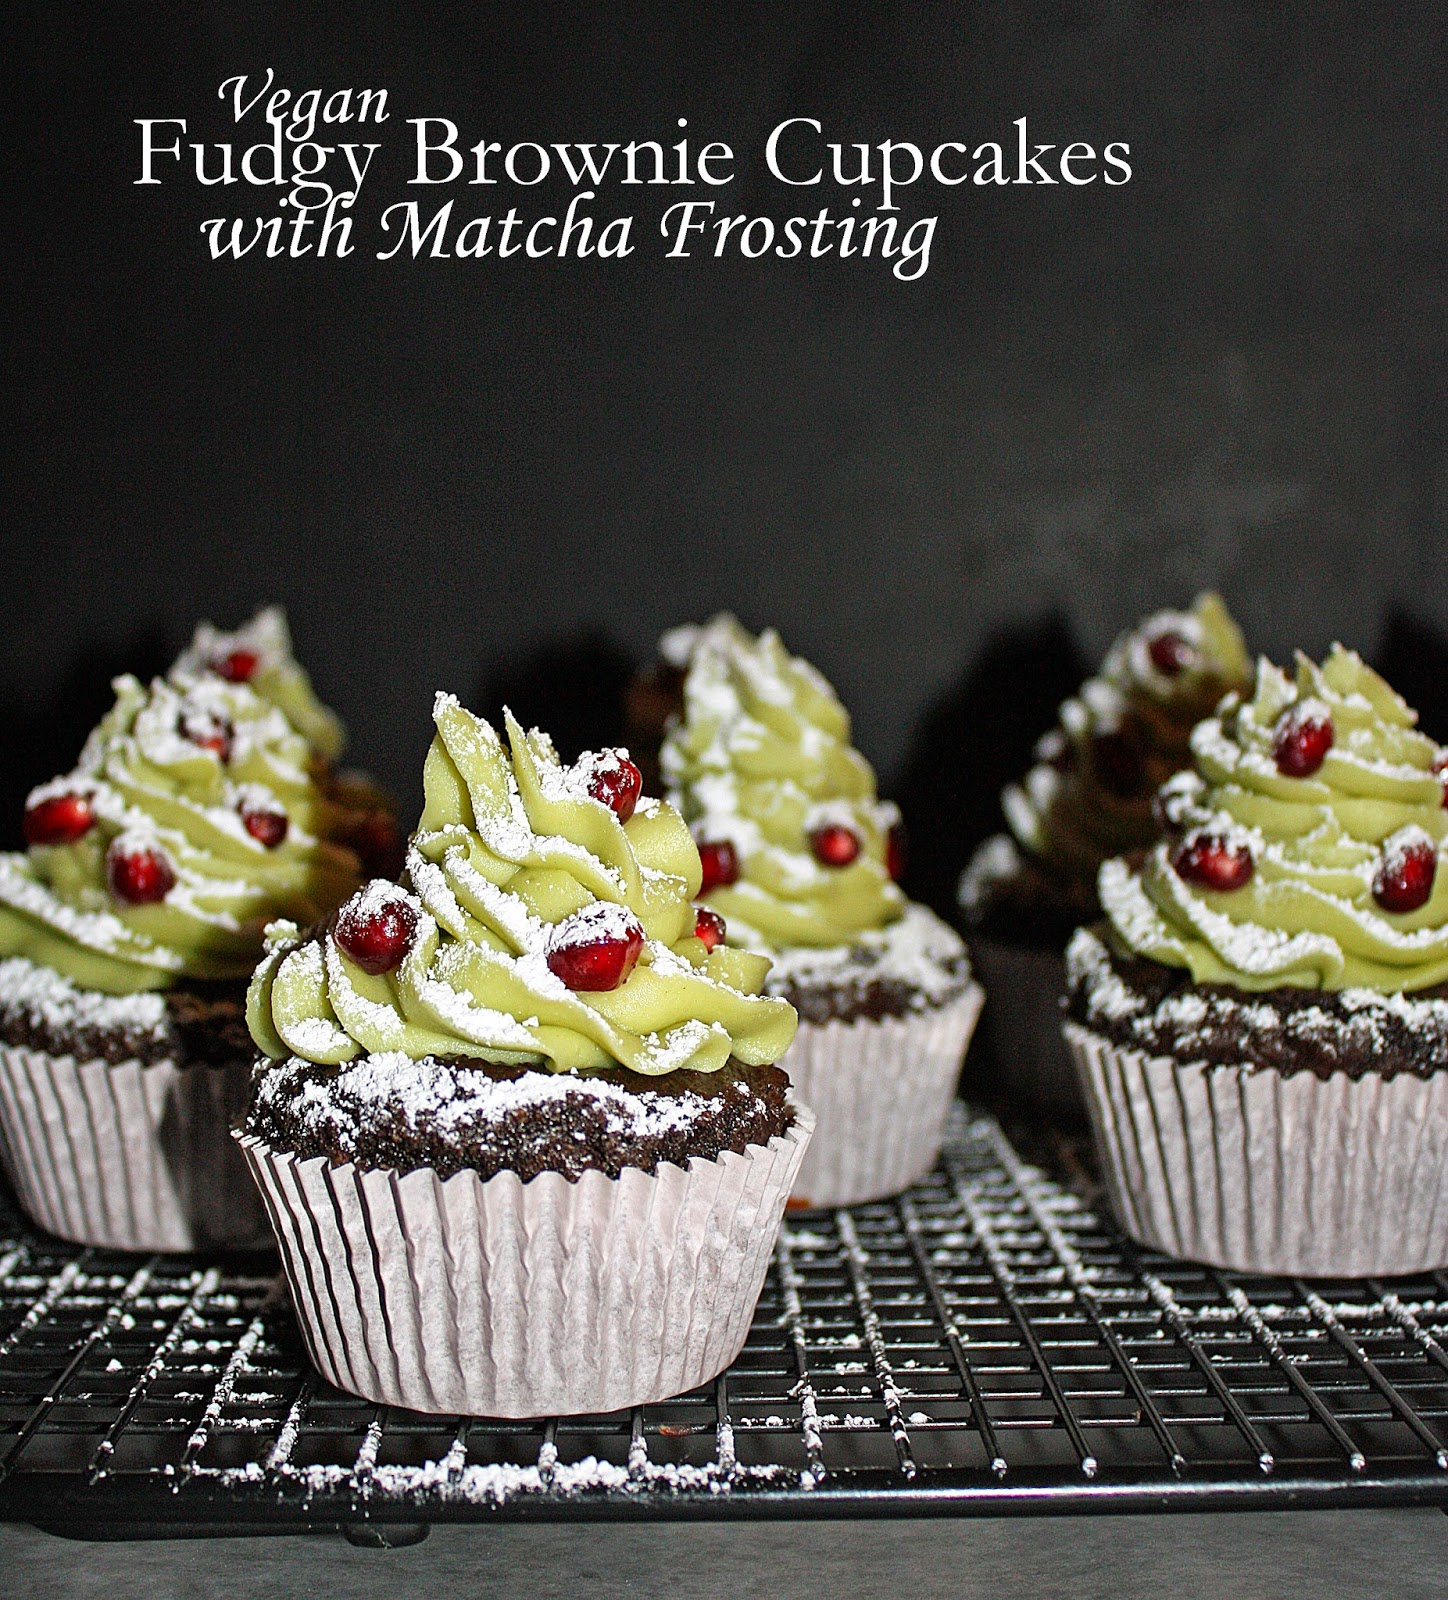 vegan fudgy brownie cupcakes with matcha frosting